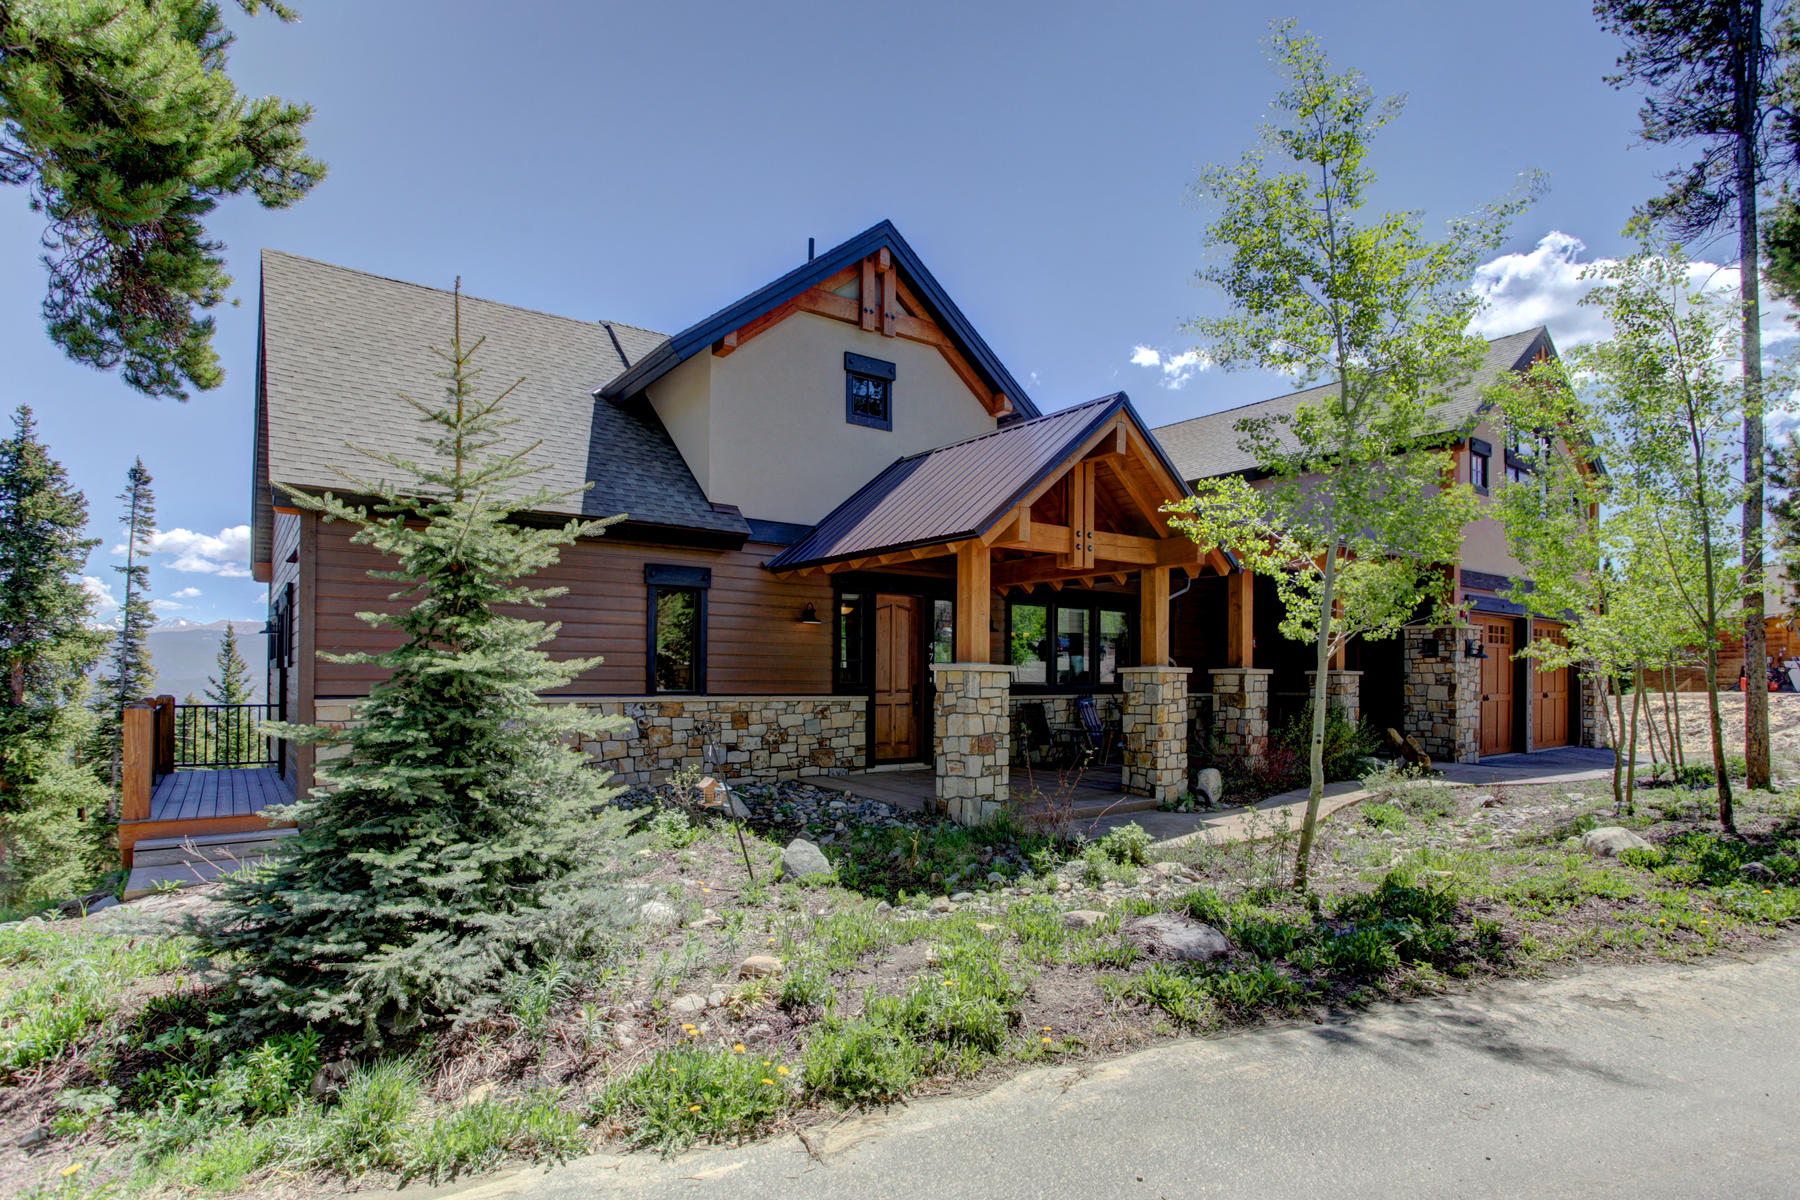 Single Family Home for Active at Peaceful Cul-De-Sac Home 0471 Slalom Drive Breckenridge, Colorado 80424 United States